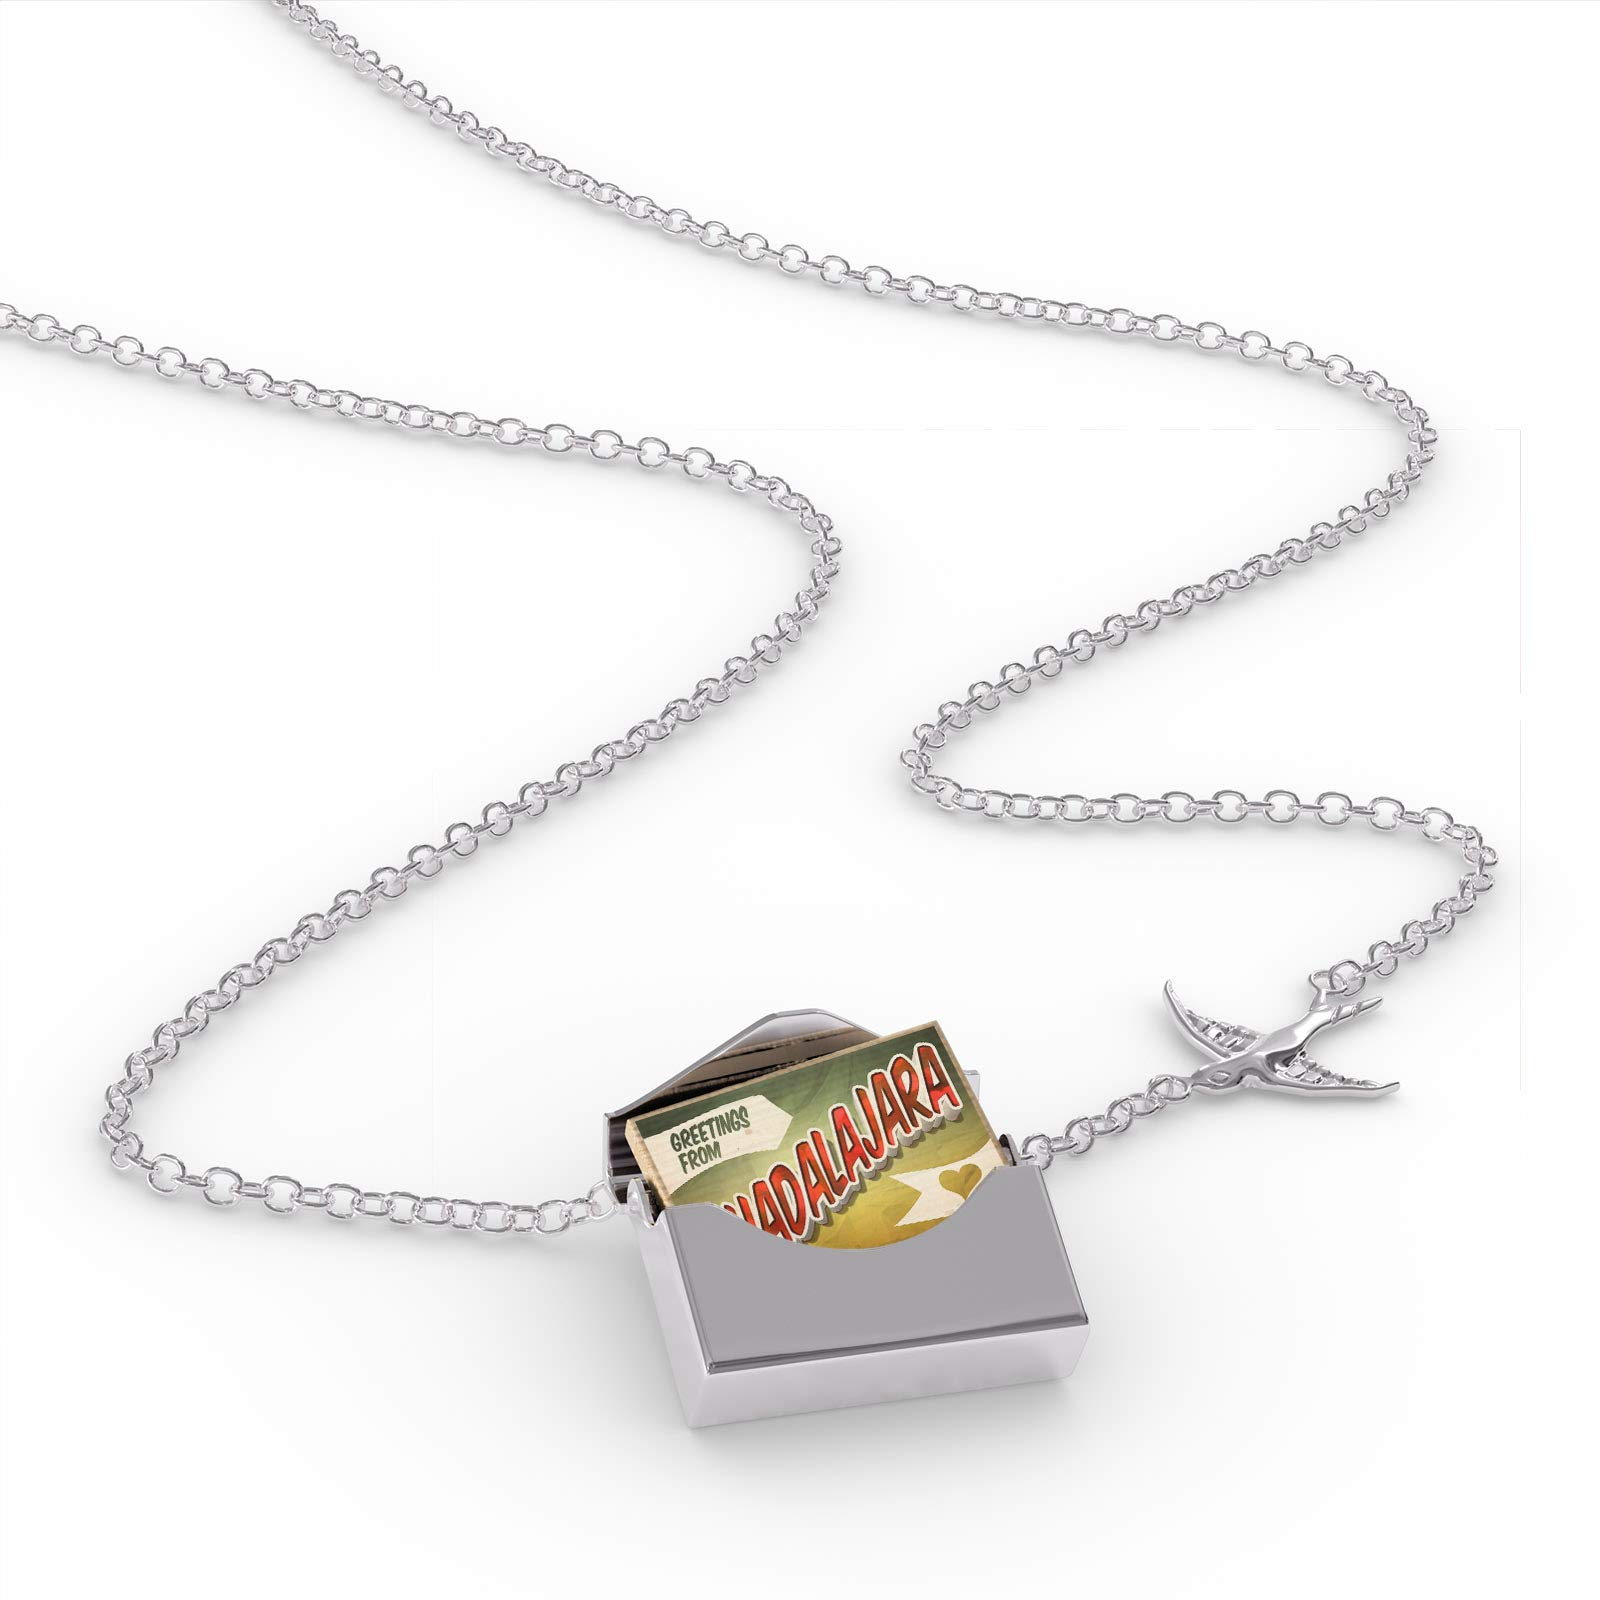 NEONBLOND Locket Necklace Greetings from Guadalajara, Vintage Postcard in a Silver Envelope